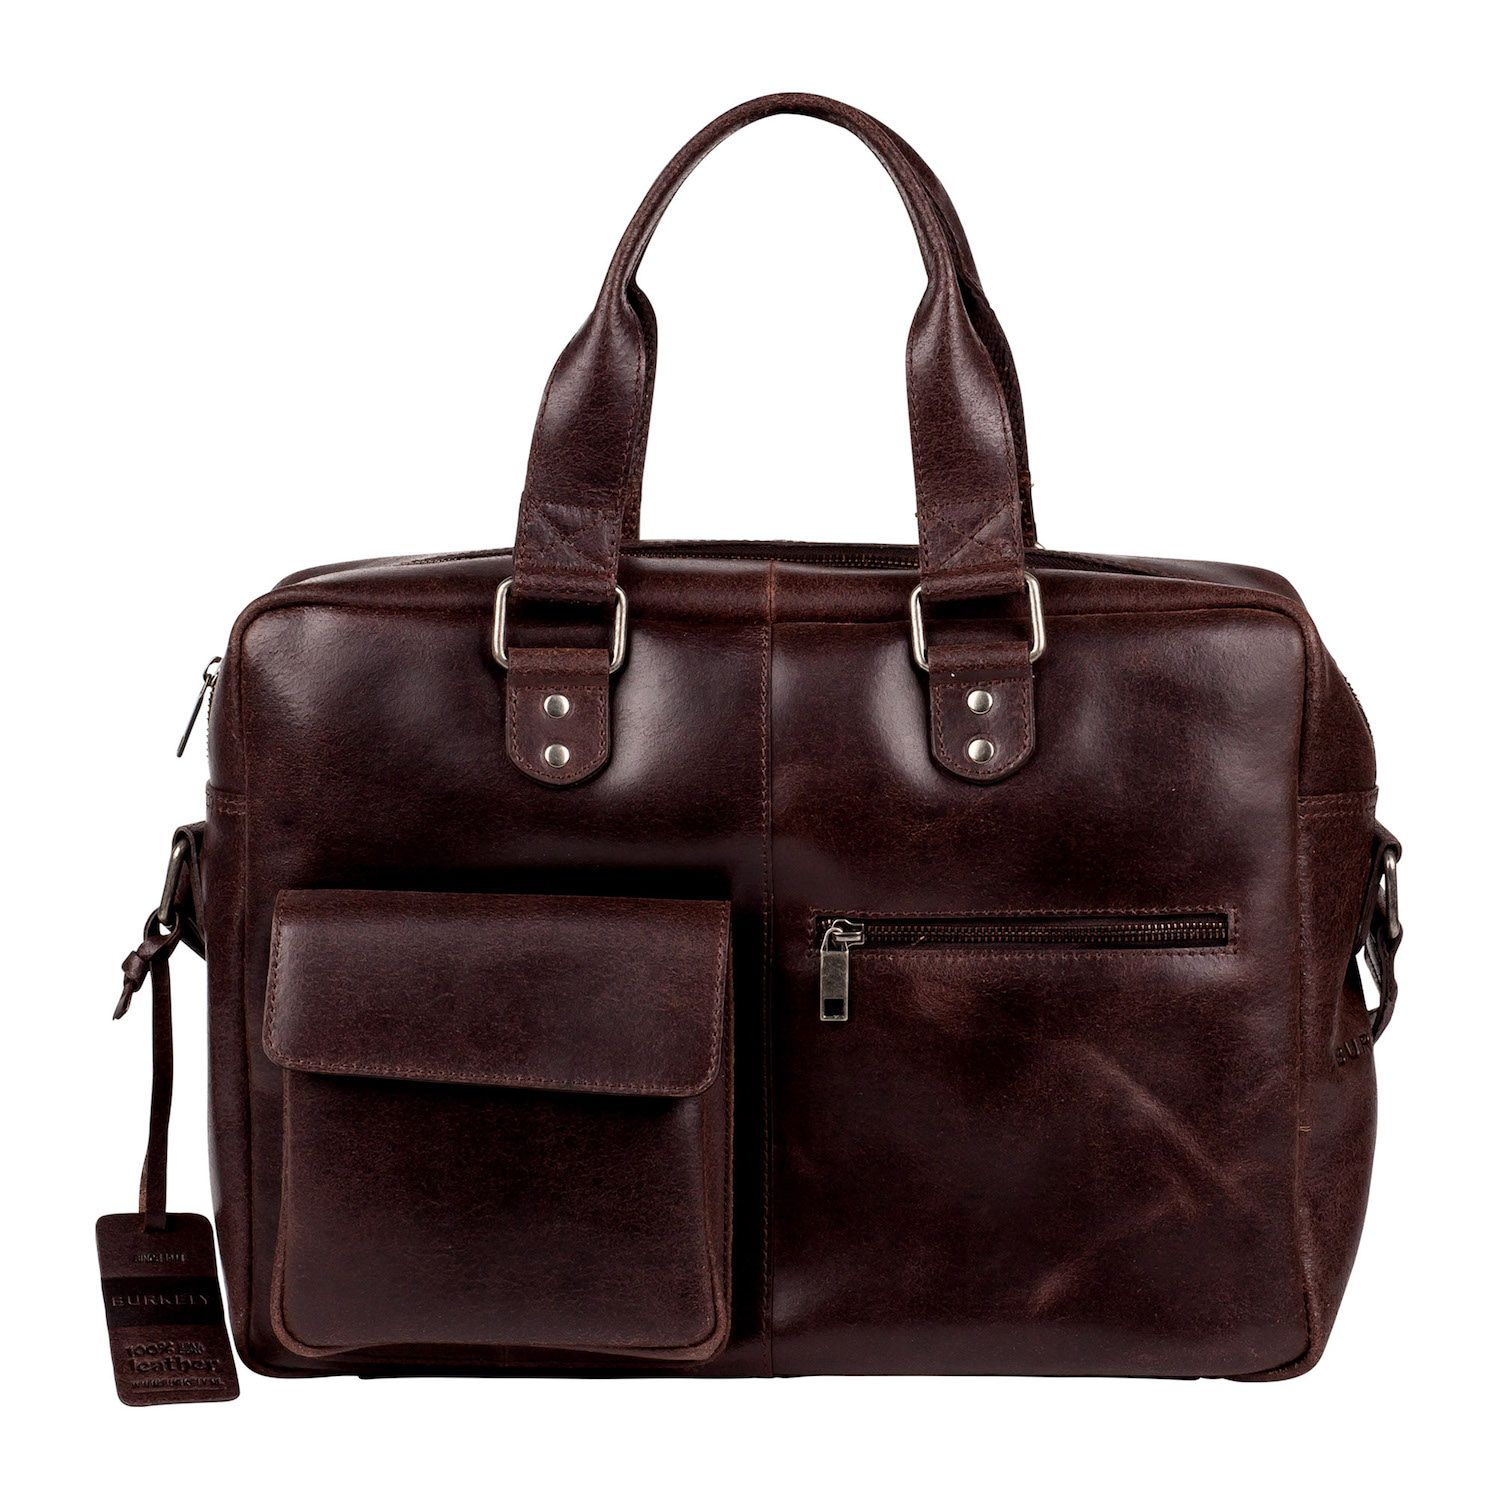 Laptoptas Burkely Quinn Vintage Business Shoulderbag Dark Brown 14 inch